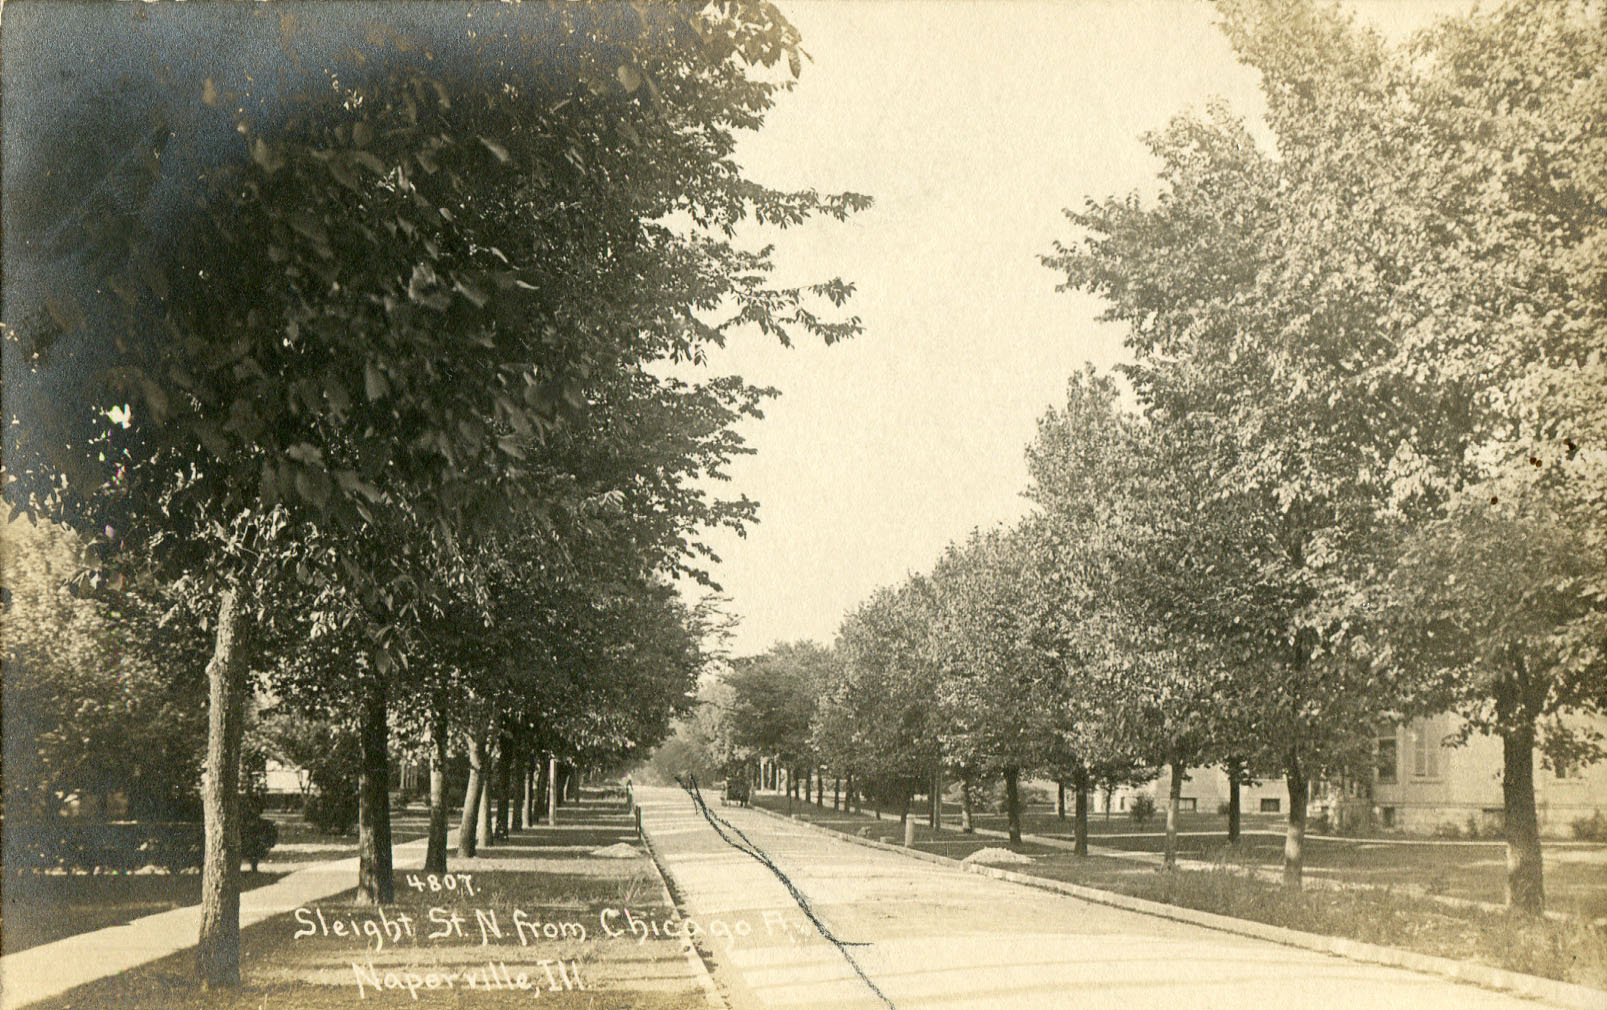 Postcard view of Sleight Street